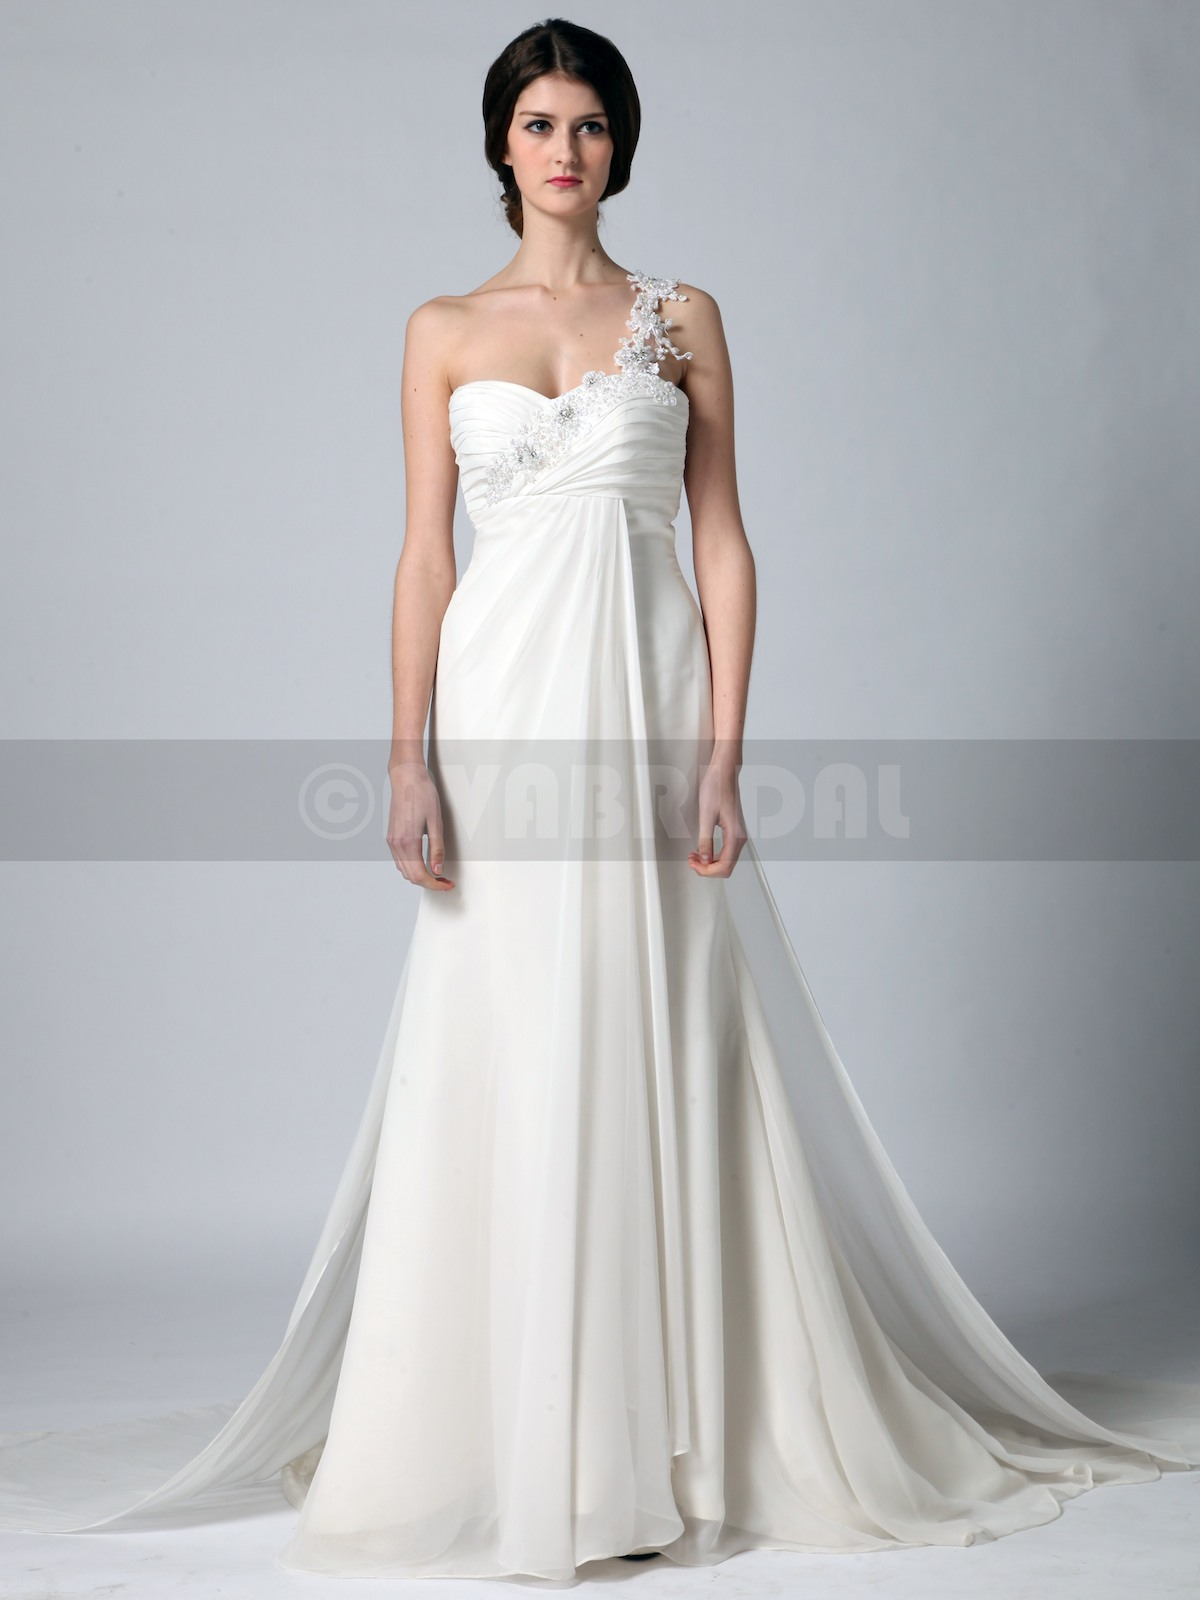 Grecian goddess wedding dress lydia ava bridal for Grecian goddess wedding dresses